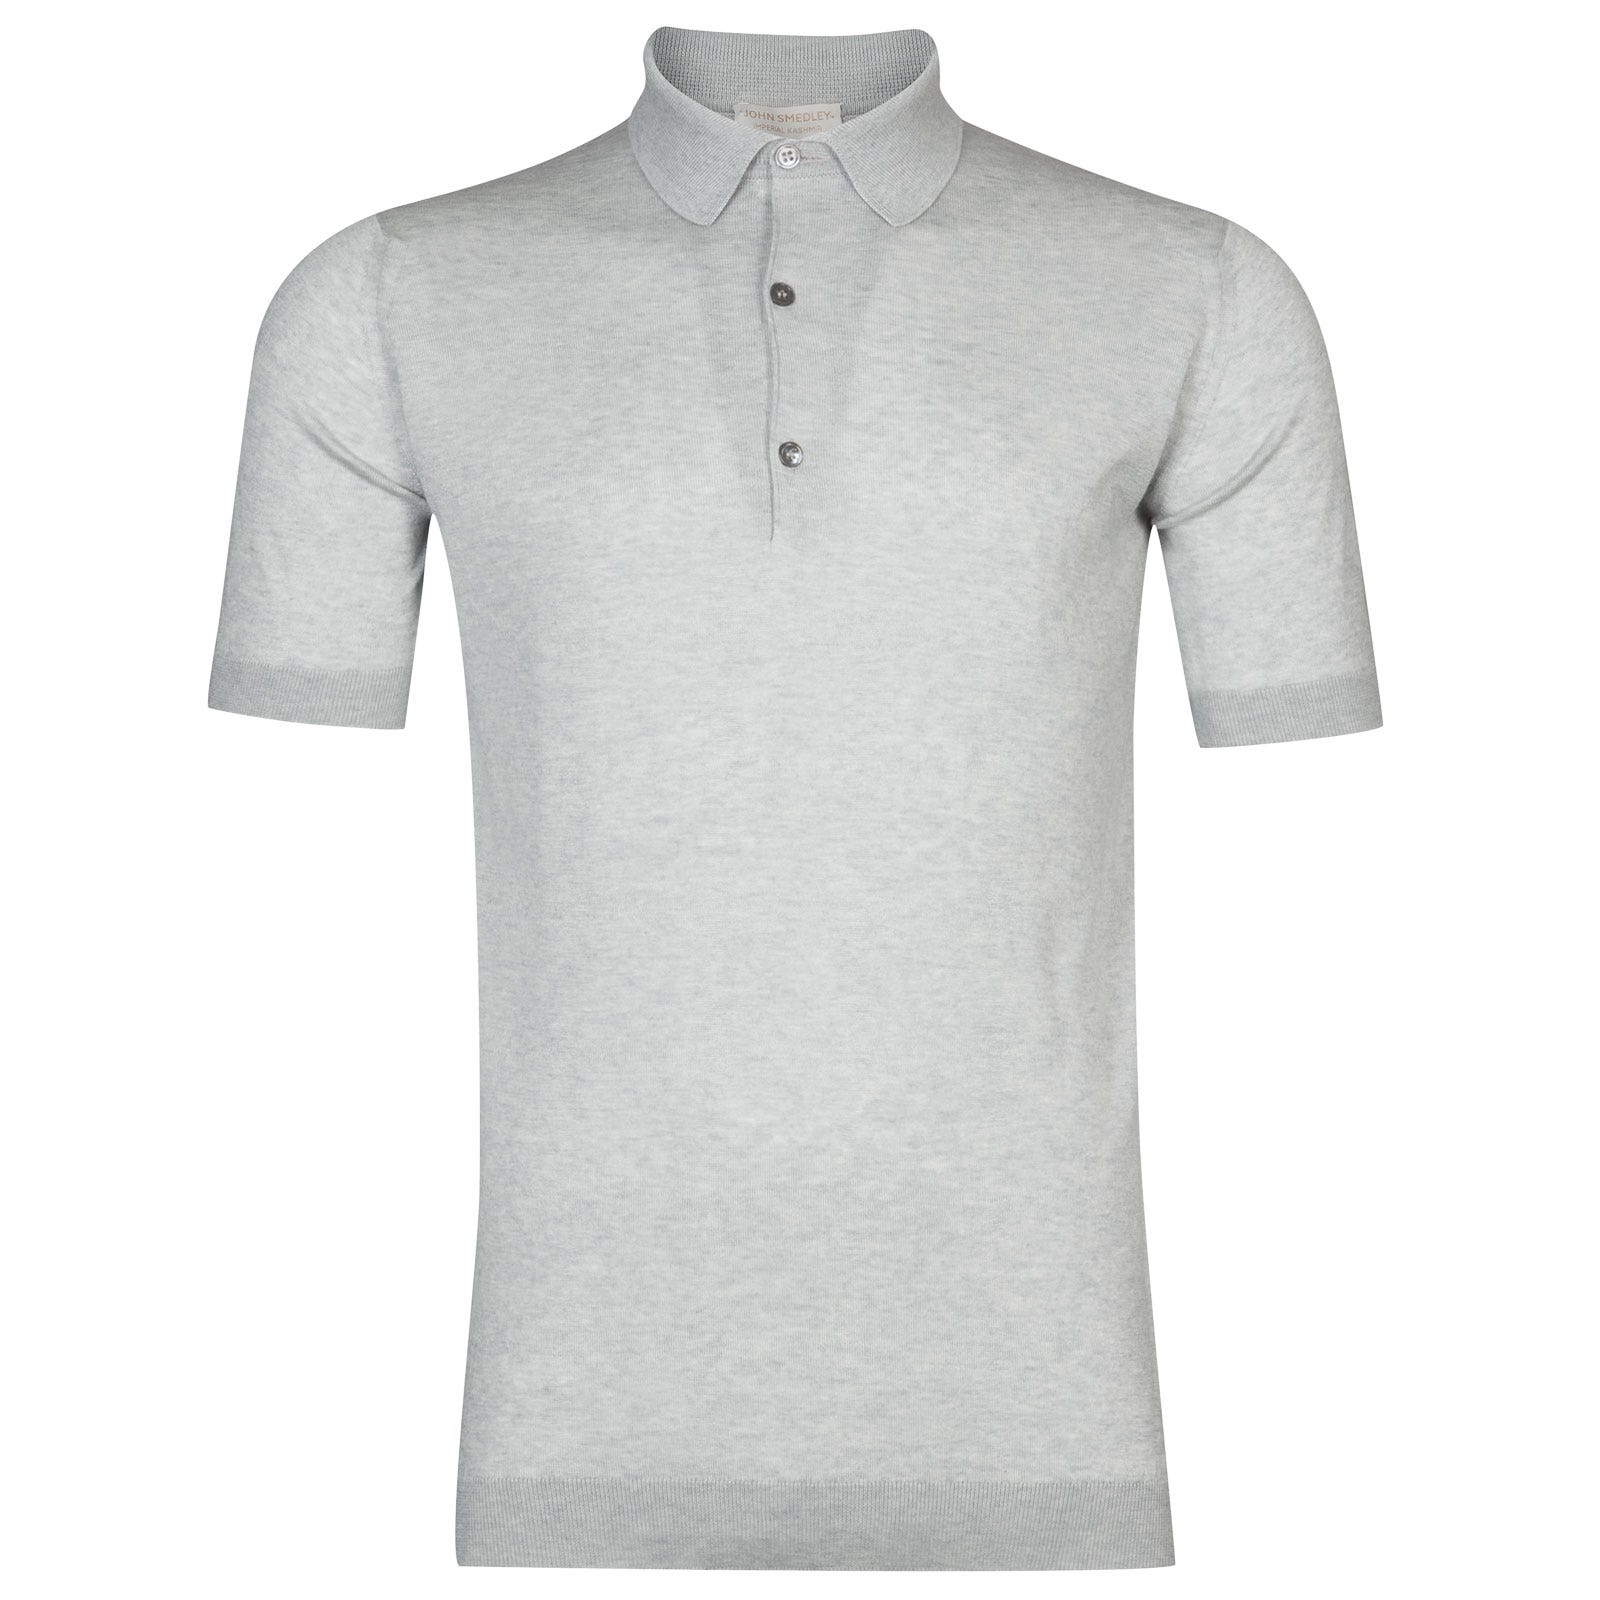 John Smedley Haddon Sea Island Cotton and Cashmere Shirt in Silver-L